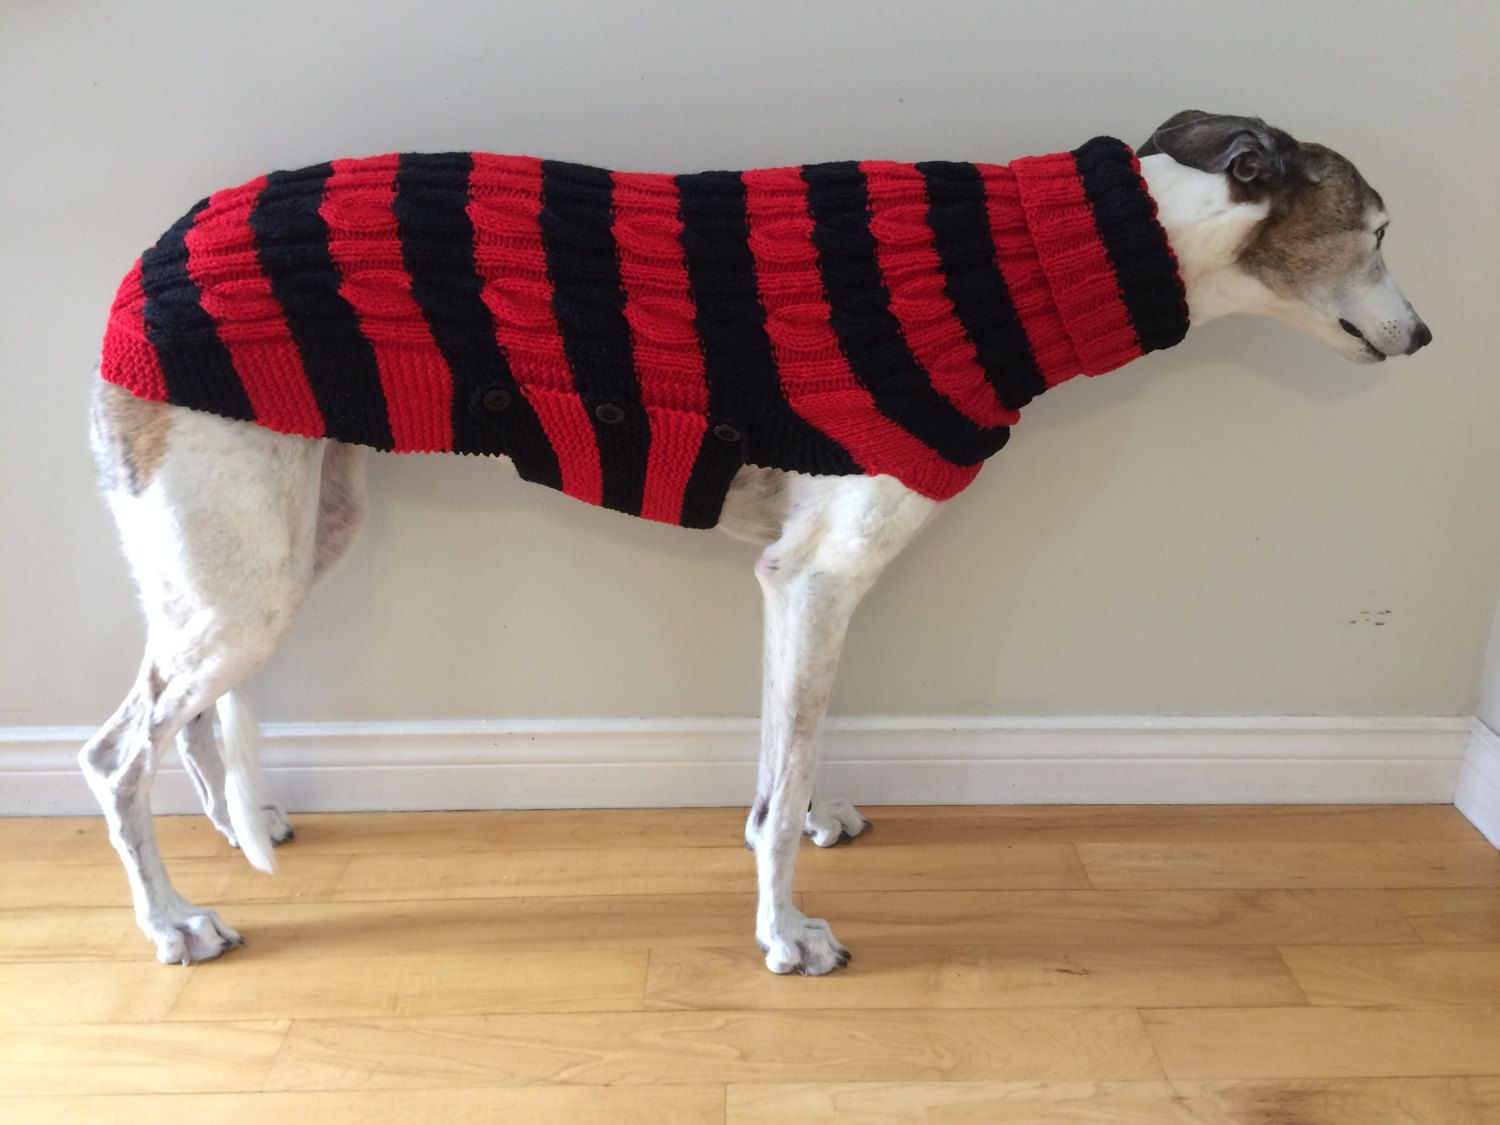 Small greyhound sweater greyhound sweater greyhound coat small greyhound sweater greyhound sweater greyhound coat sighthound coat dog sweater large dog sweater large dog clothes bankloansurffo Images